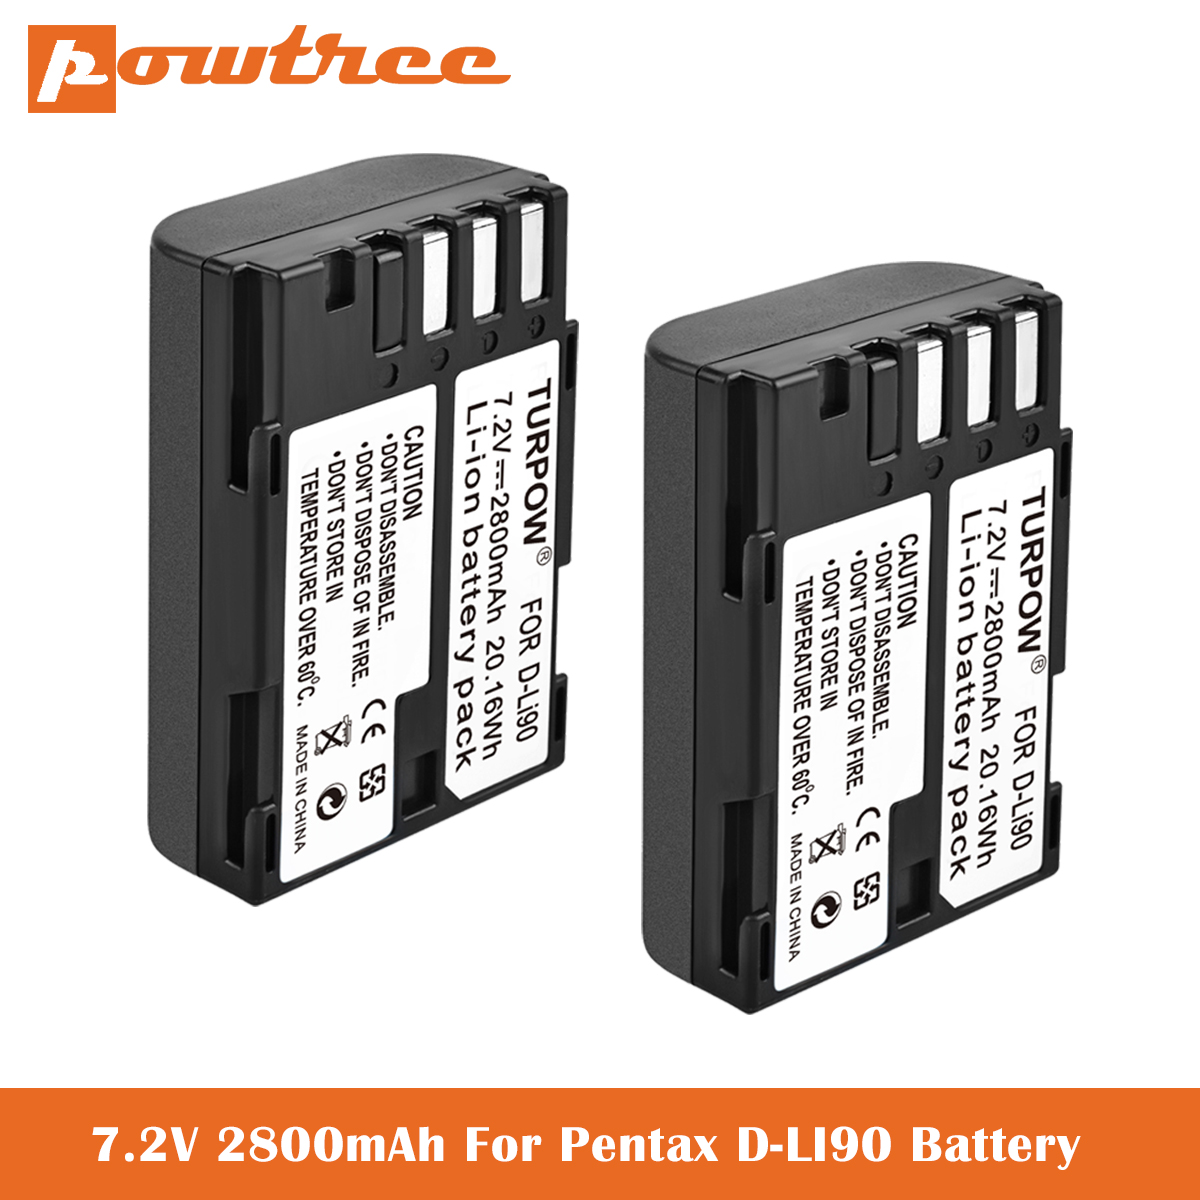 <font><b>7</b></font>.2V <font><b>2800mAh</b></font> D-LI90, DLI90 Batteries for Pentax K-1 DSLR, K-01, K-<font><b>3</b></font>, K-<font><b>3</b></font> II, K-5, K-5 II, K-5 IIs, K-<font><b>7</b></font>,SLR 645D Digital Camera image